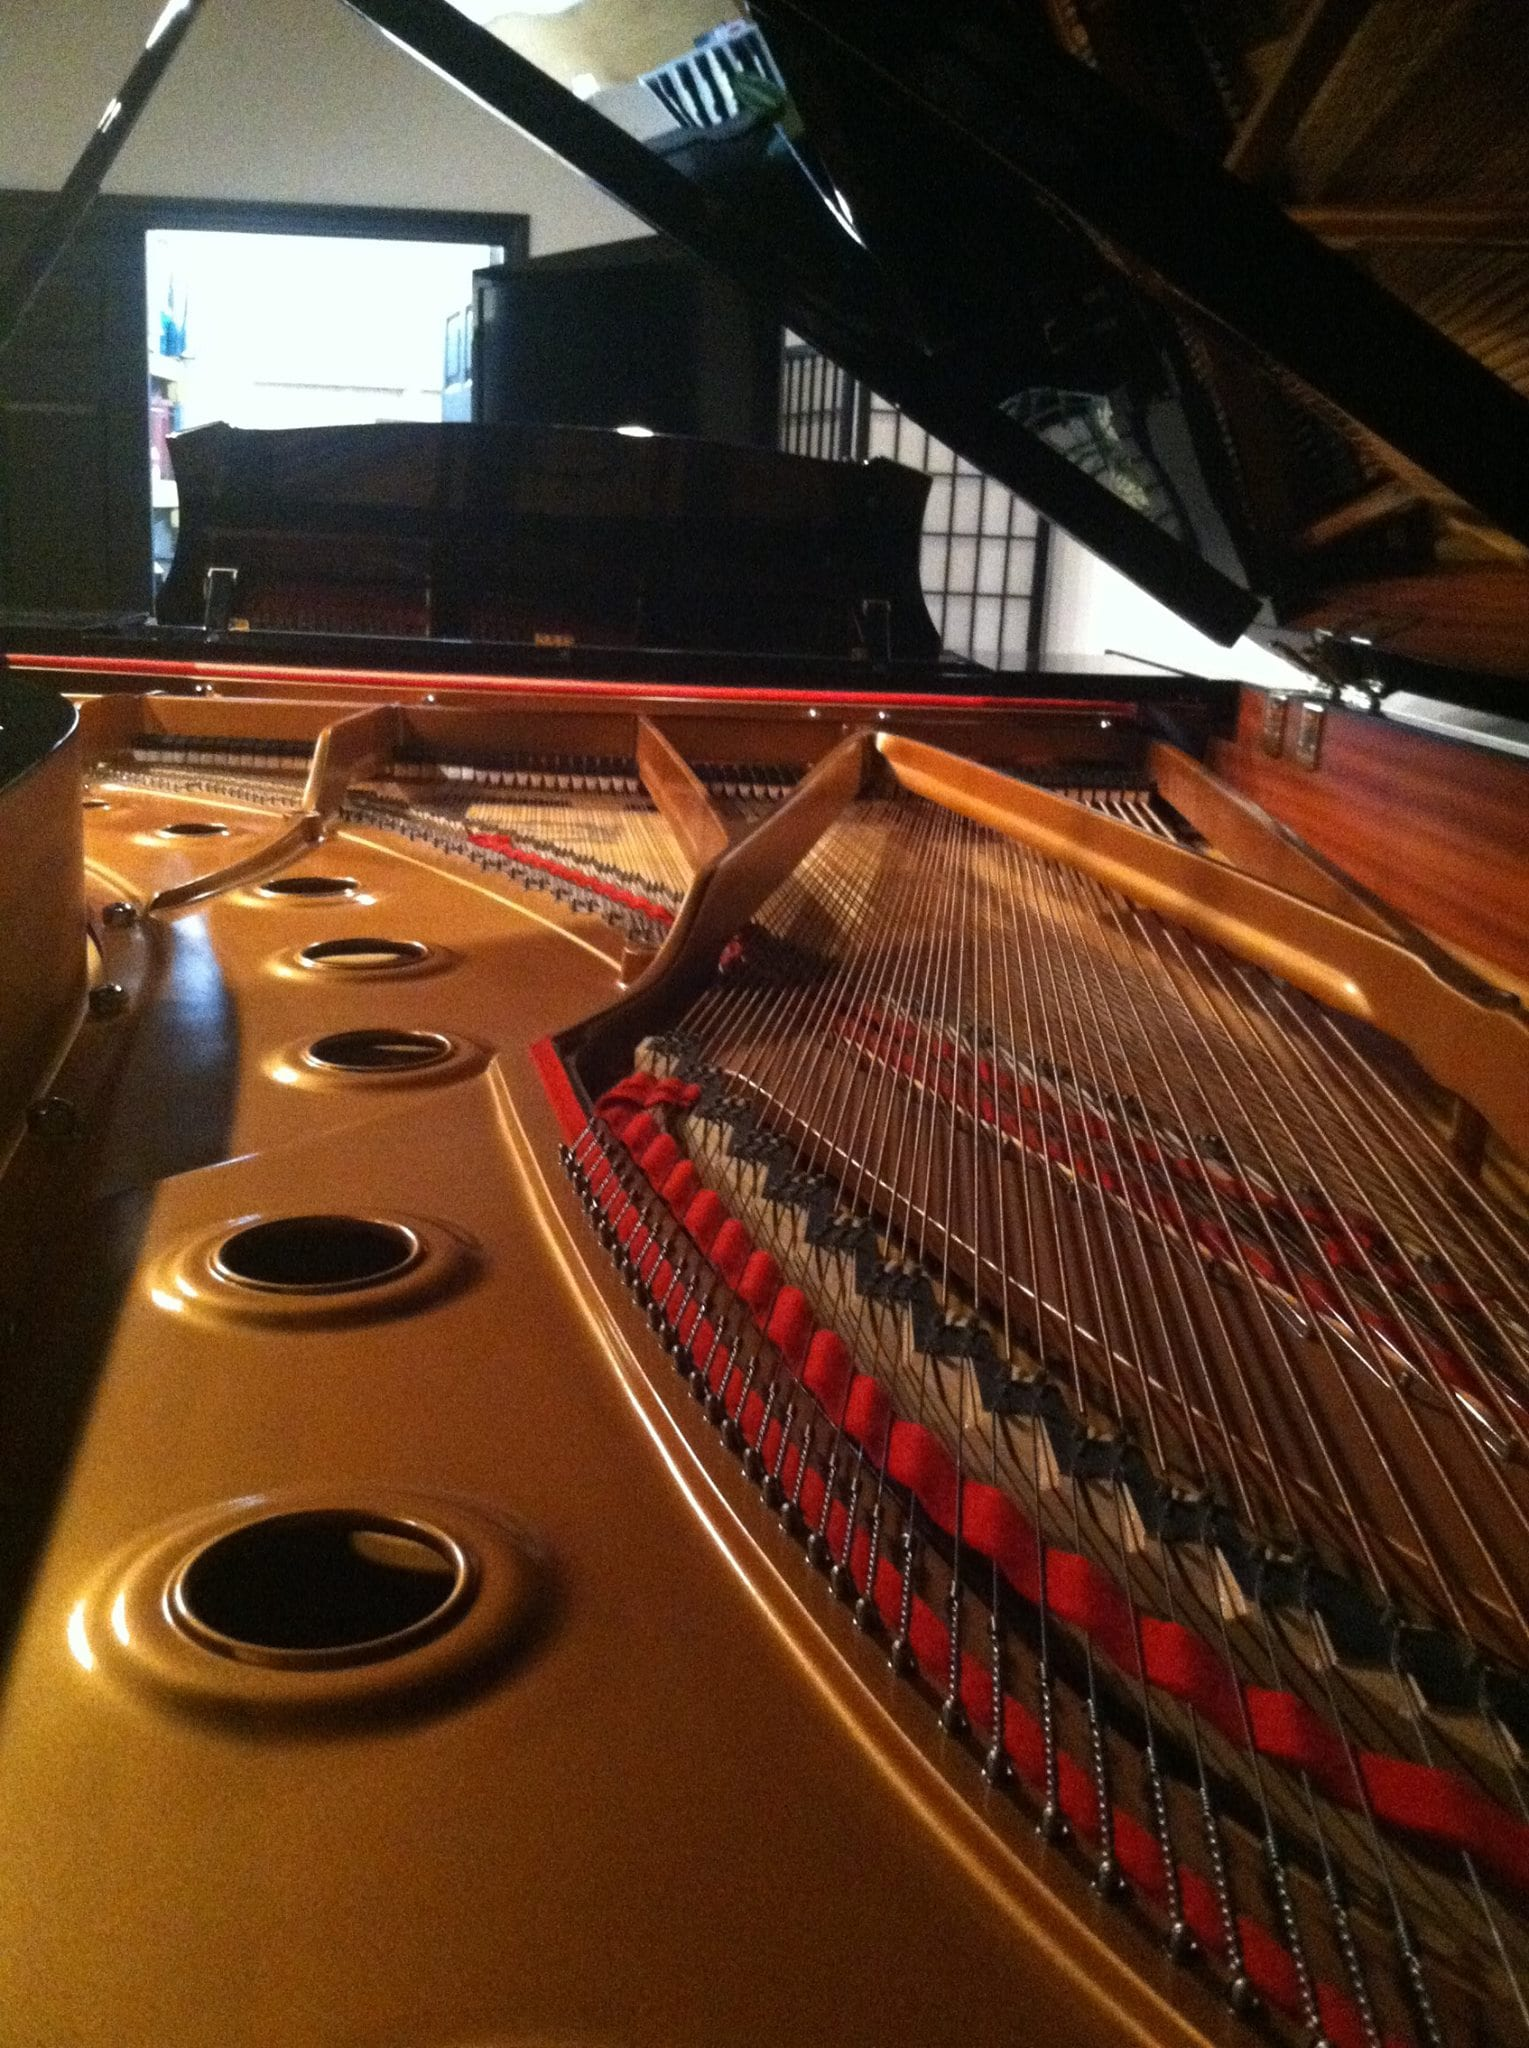 Inside view of a grand piano